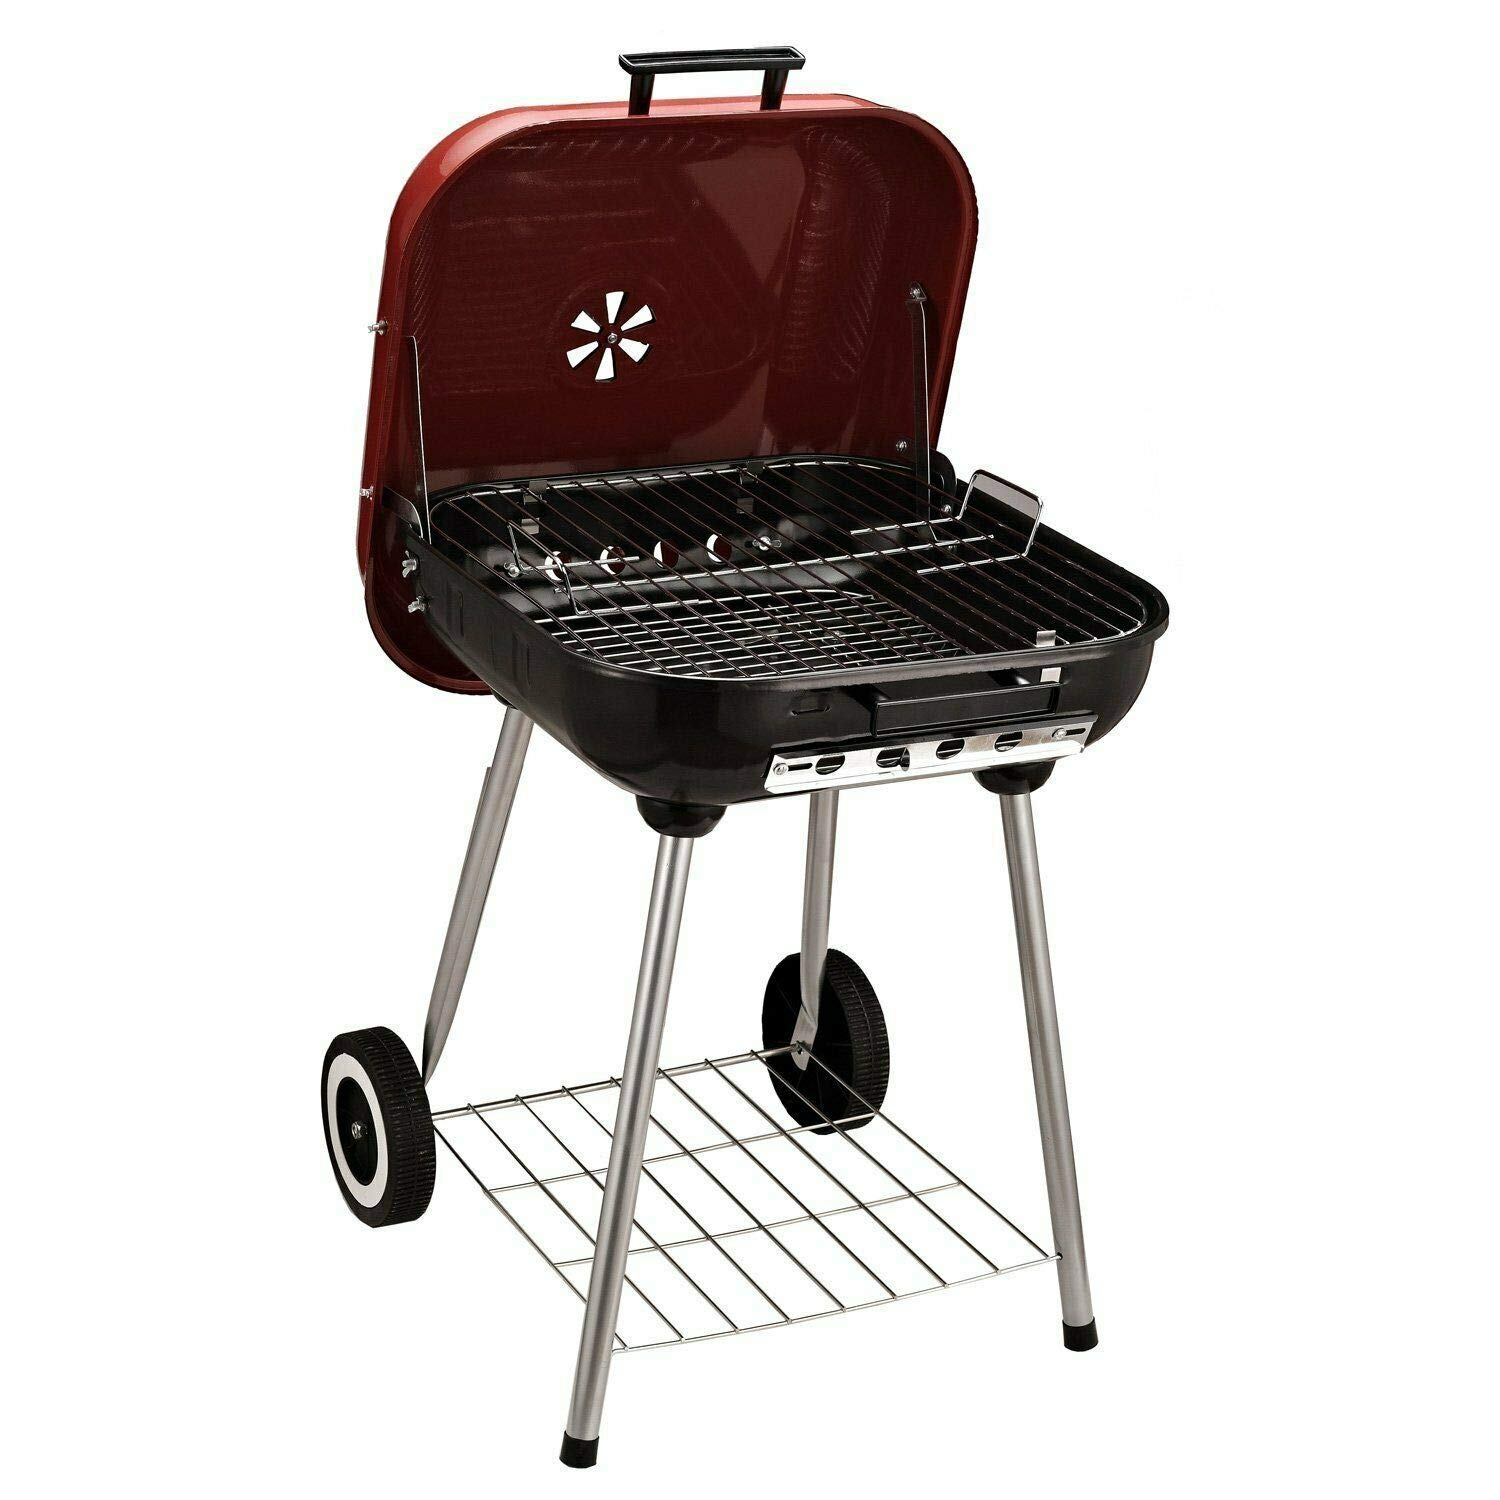 FDInspiration Black&Red Portable Kettle Outdoor Barbecue Charcoal Grill Picnic Camping BBQ Grilling w/Bottom Rack Shelf & Wheels with Ebook